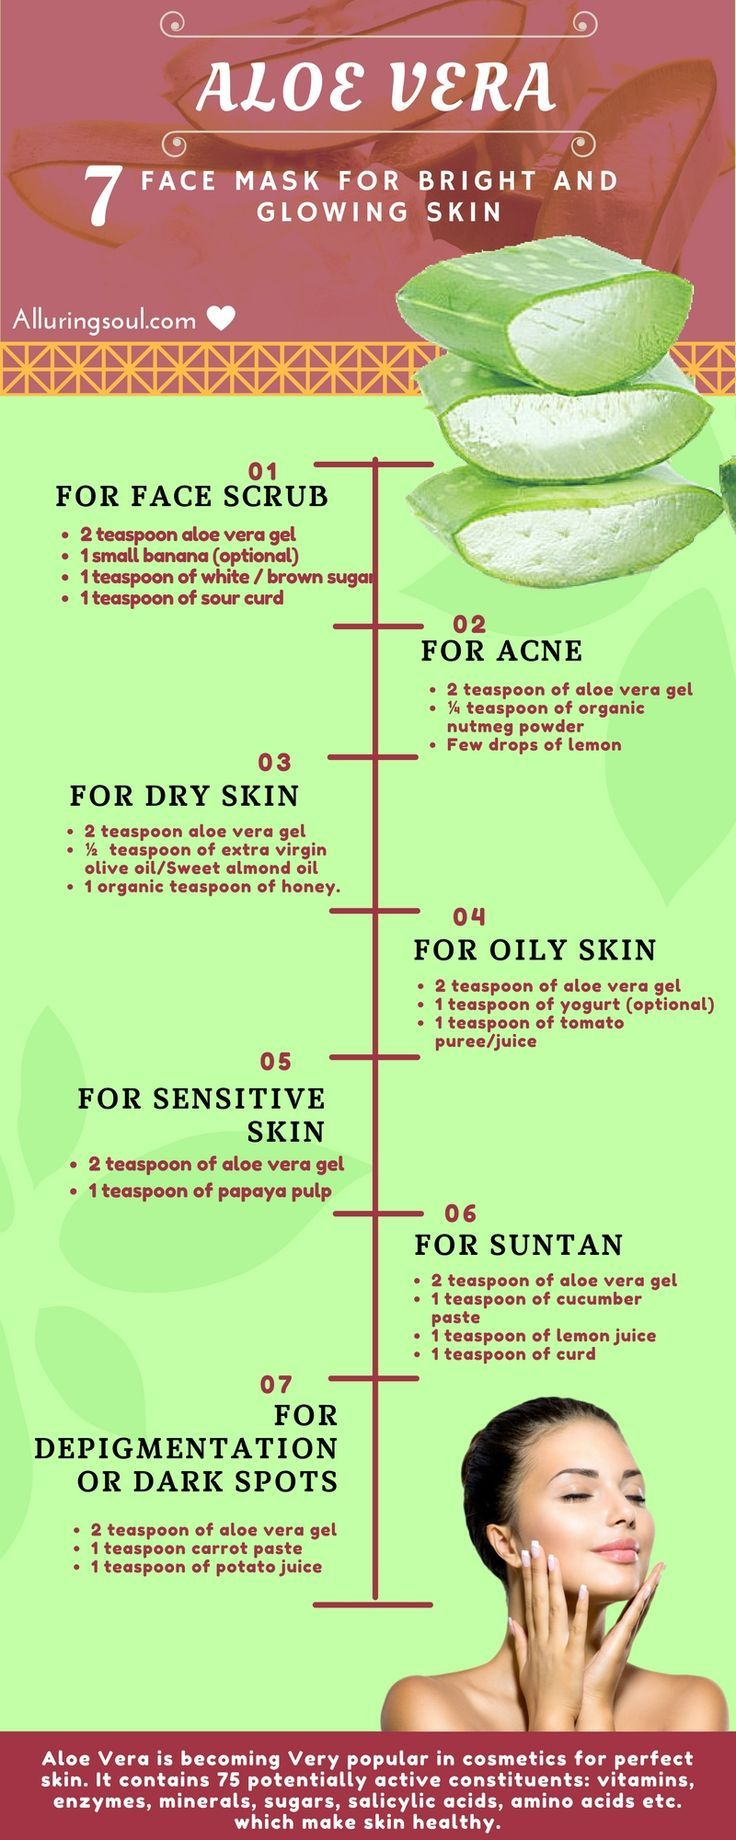 Using Aloe Vera For Improving Your Skin Health Infographic